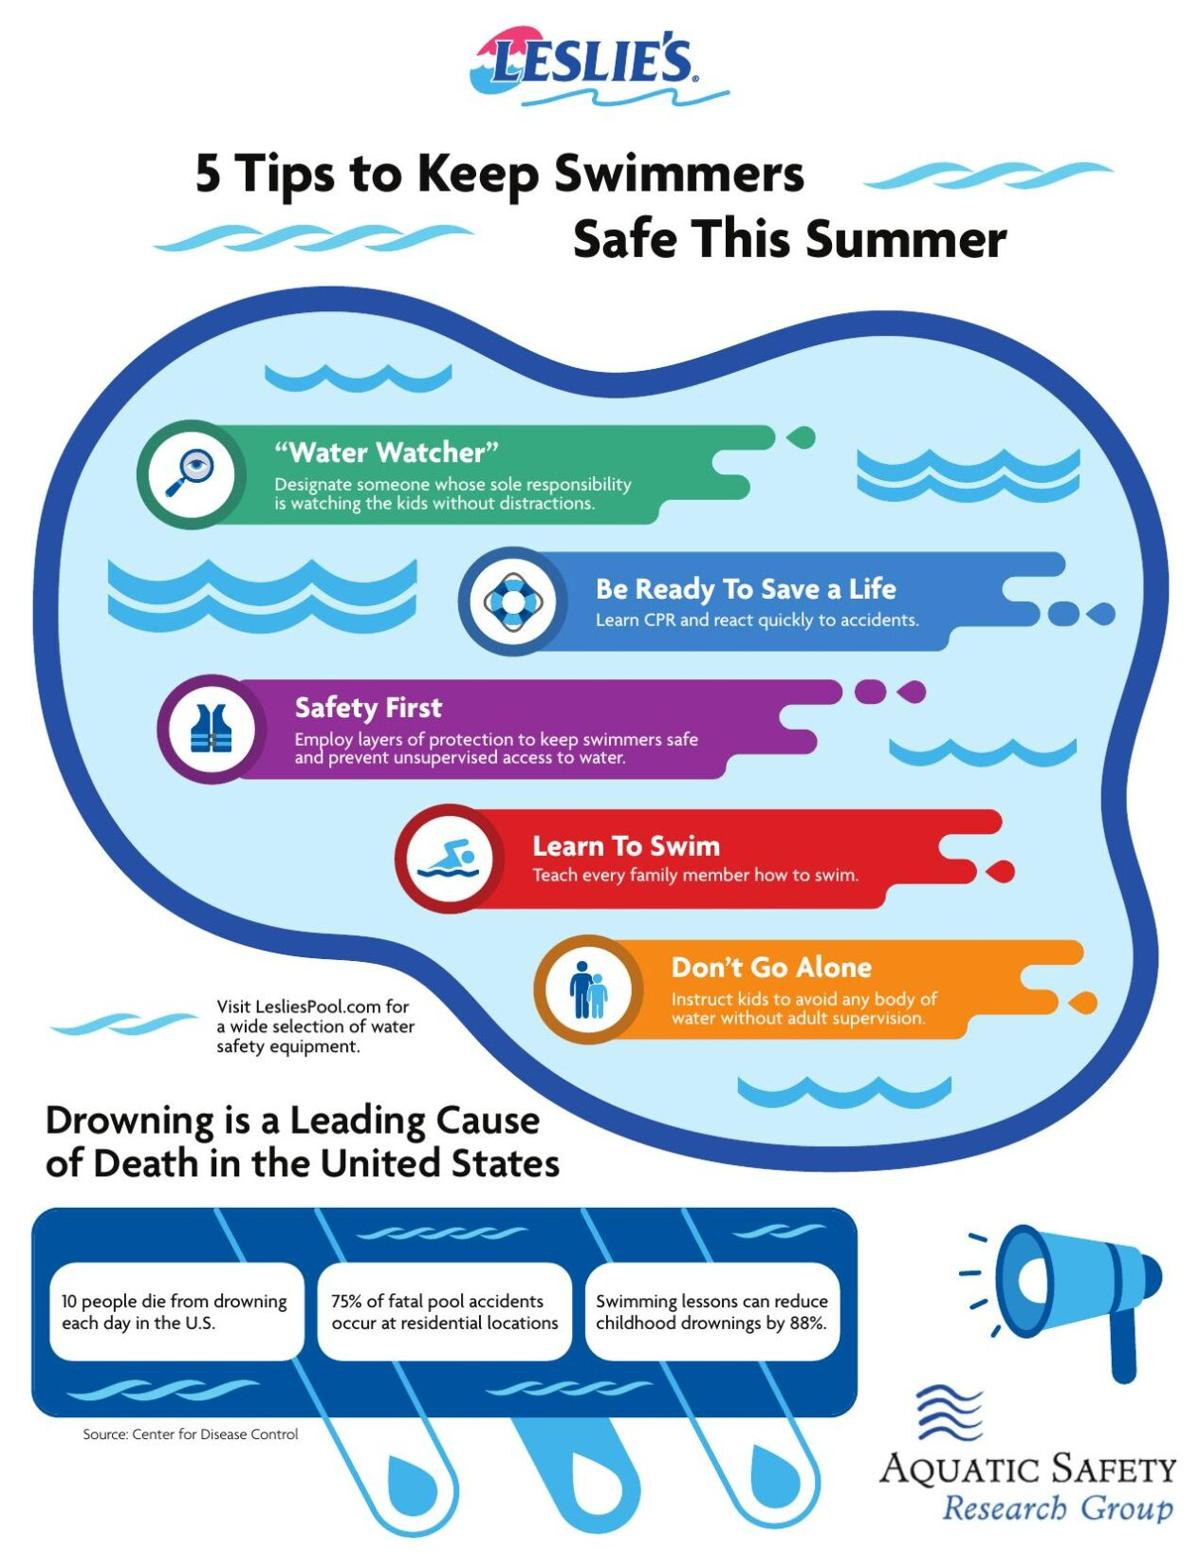 5 Tips to Keep Swimmers Safe